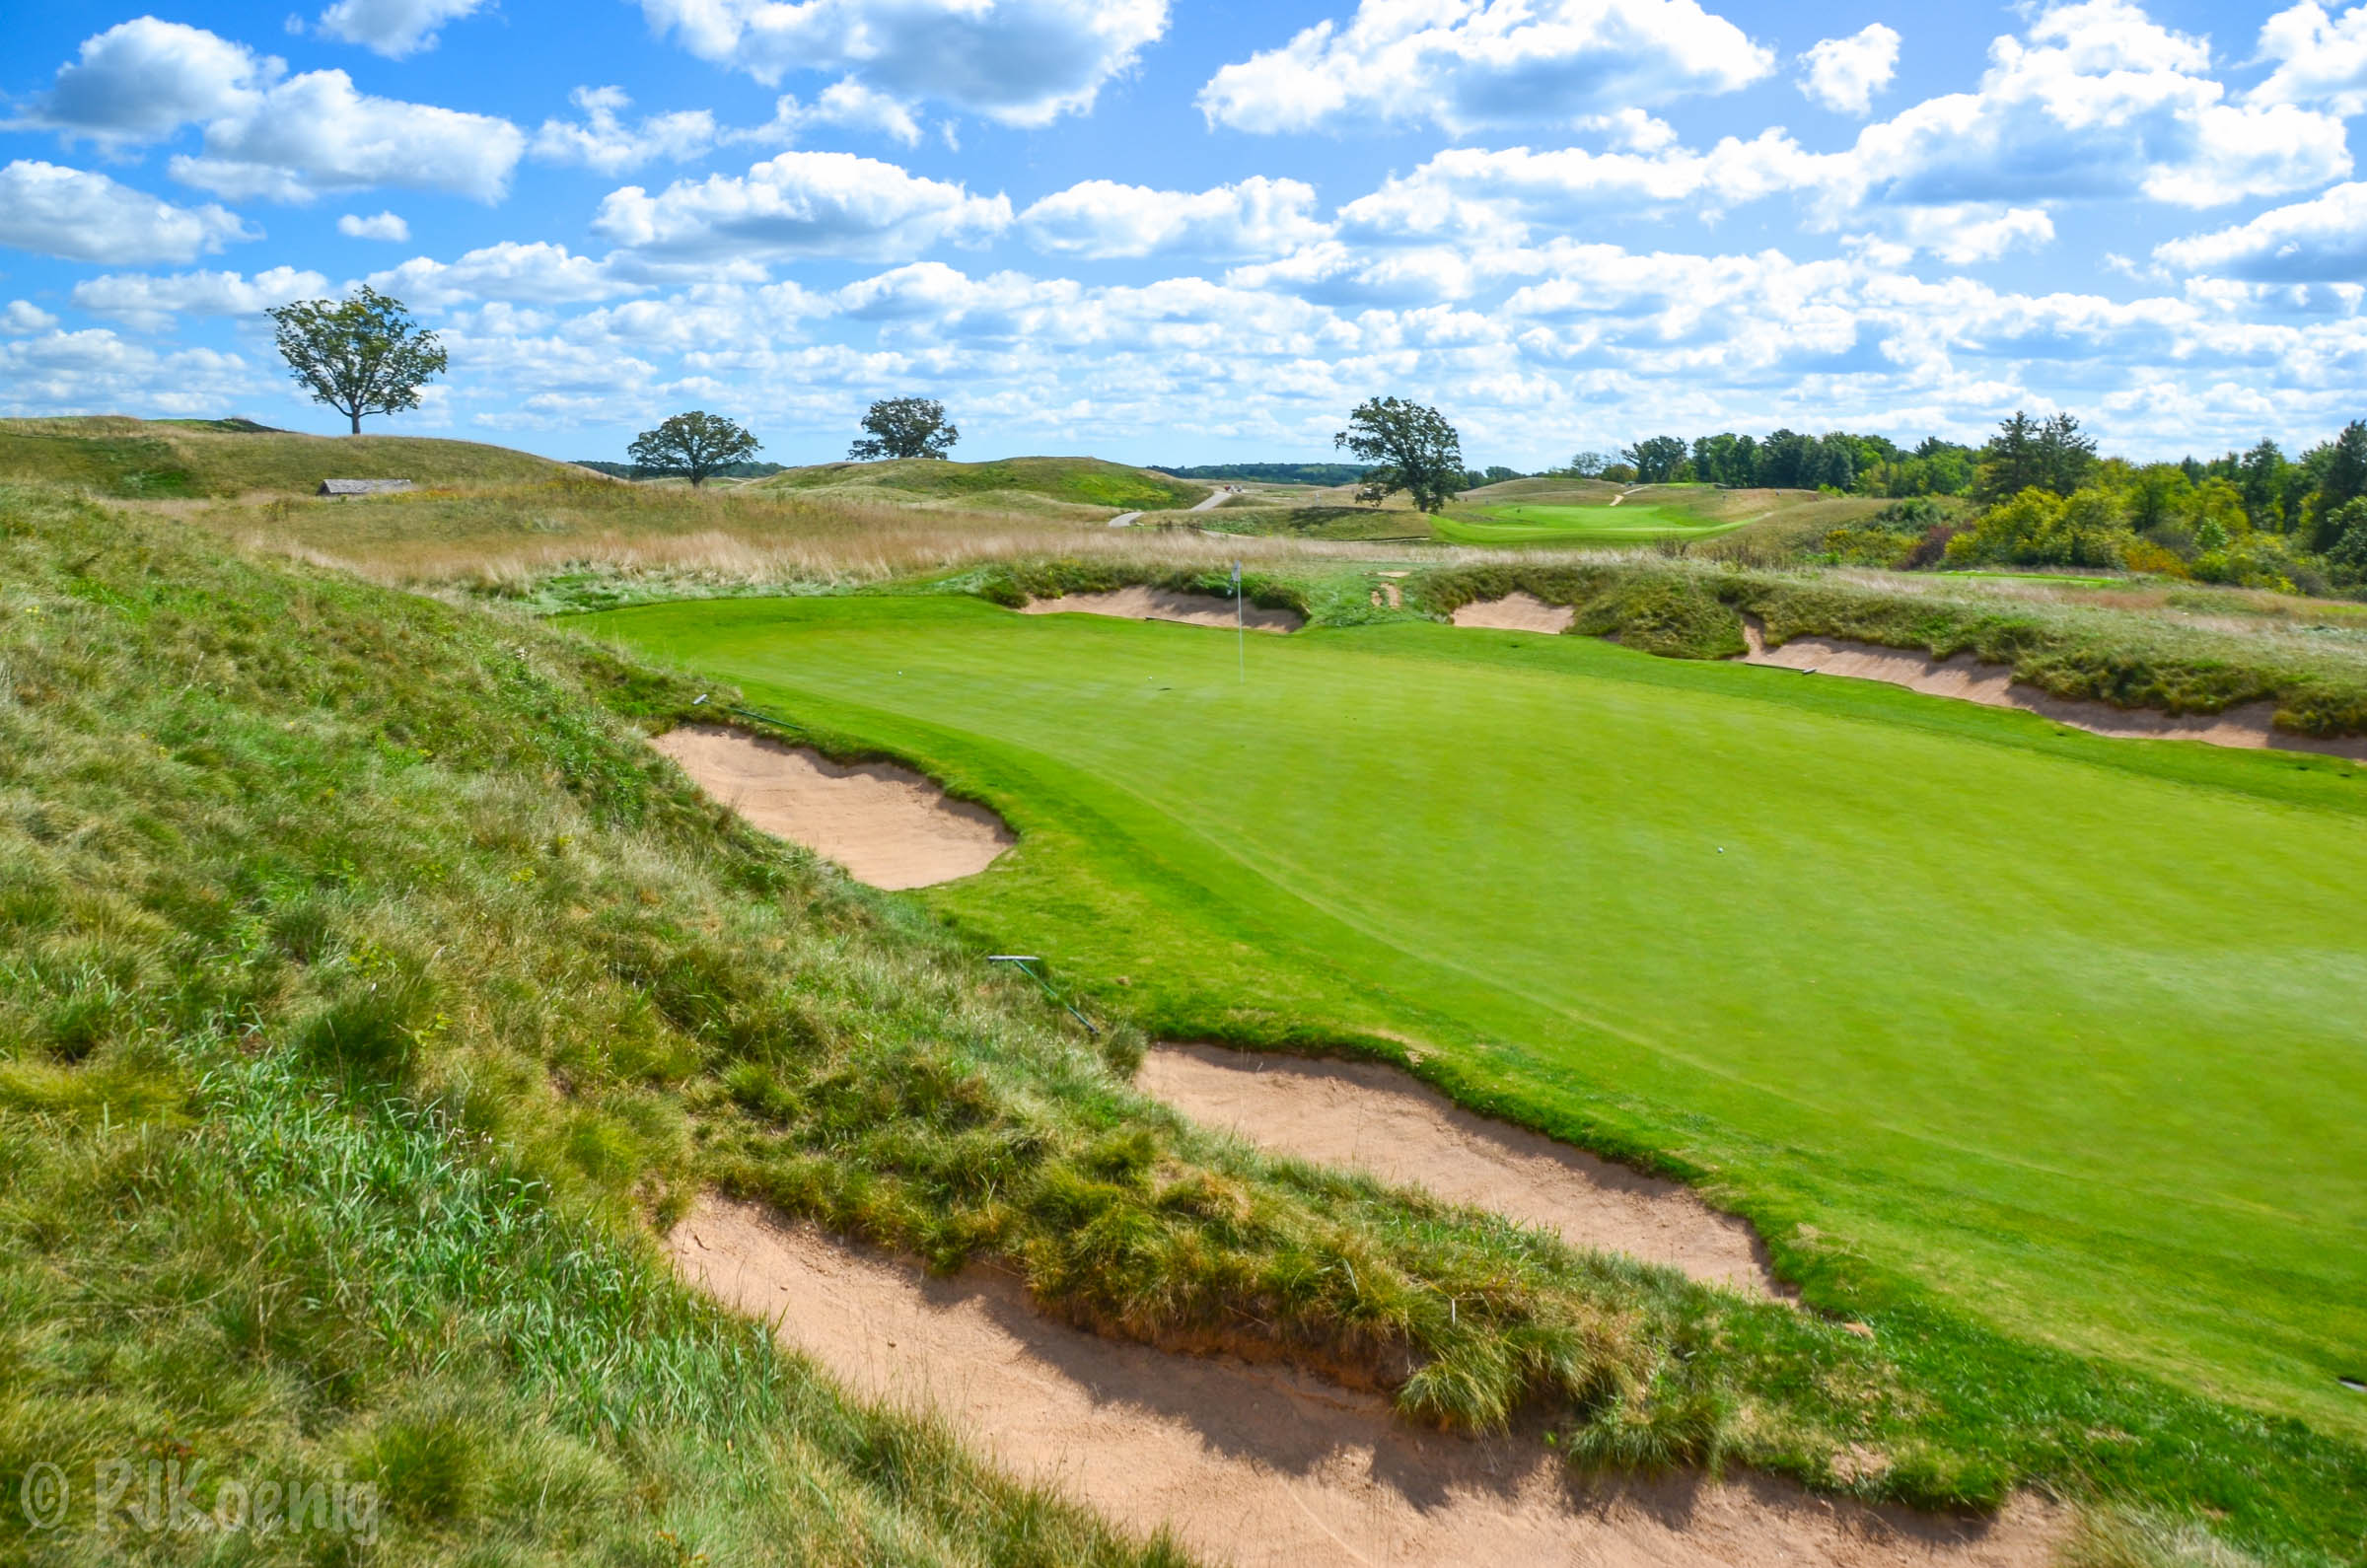 the 16th hole at Erin Hills figures to be a pivotal hole in the 2017 U.S. Open.